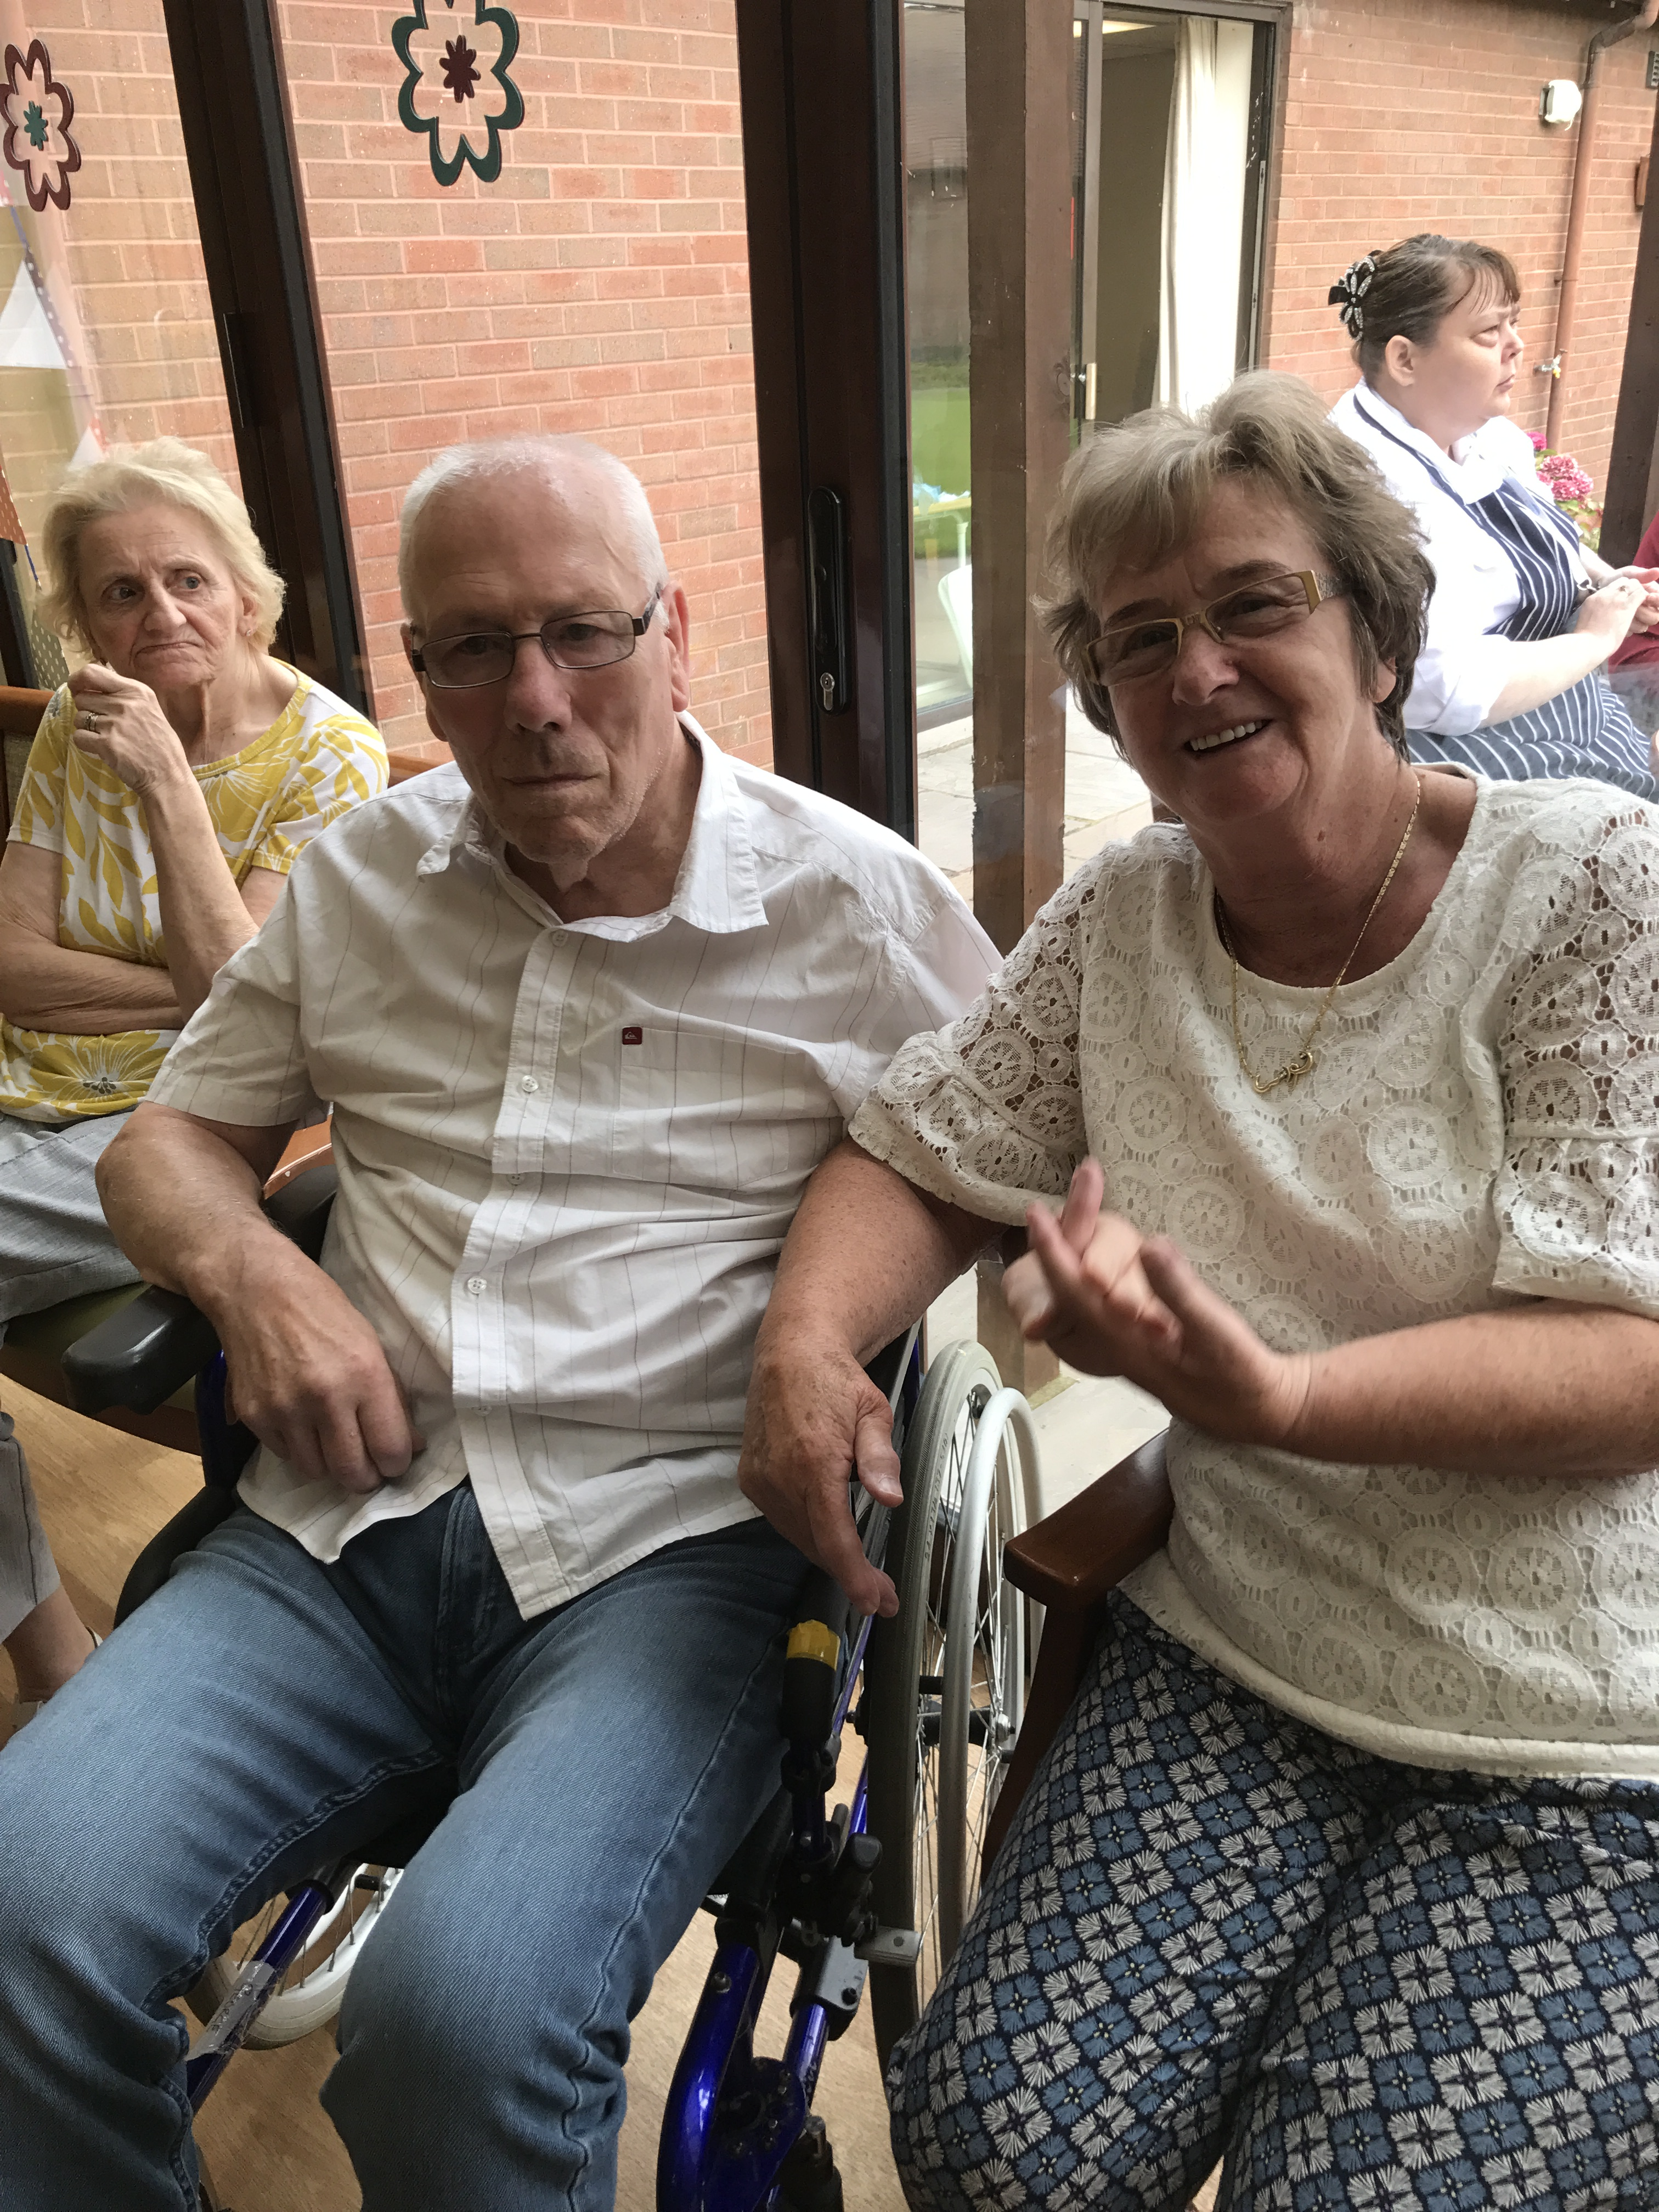 Grace Court Party Bank Hol Aug 17: Key Healthcare is dedicated to caring for elderly residents in safe. We have multiple dementia care homes including our care home middlesbrough, our care home St. Helen and care home saltburn. We excel in monitoring and improving care levels.